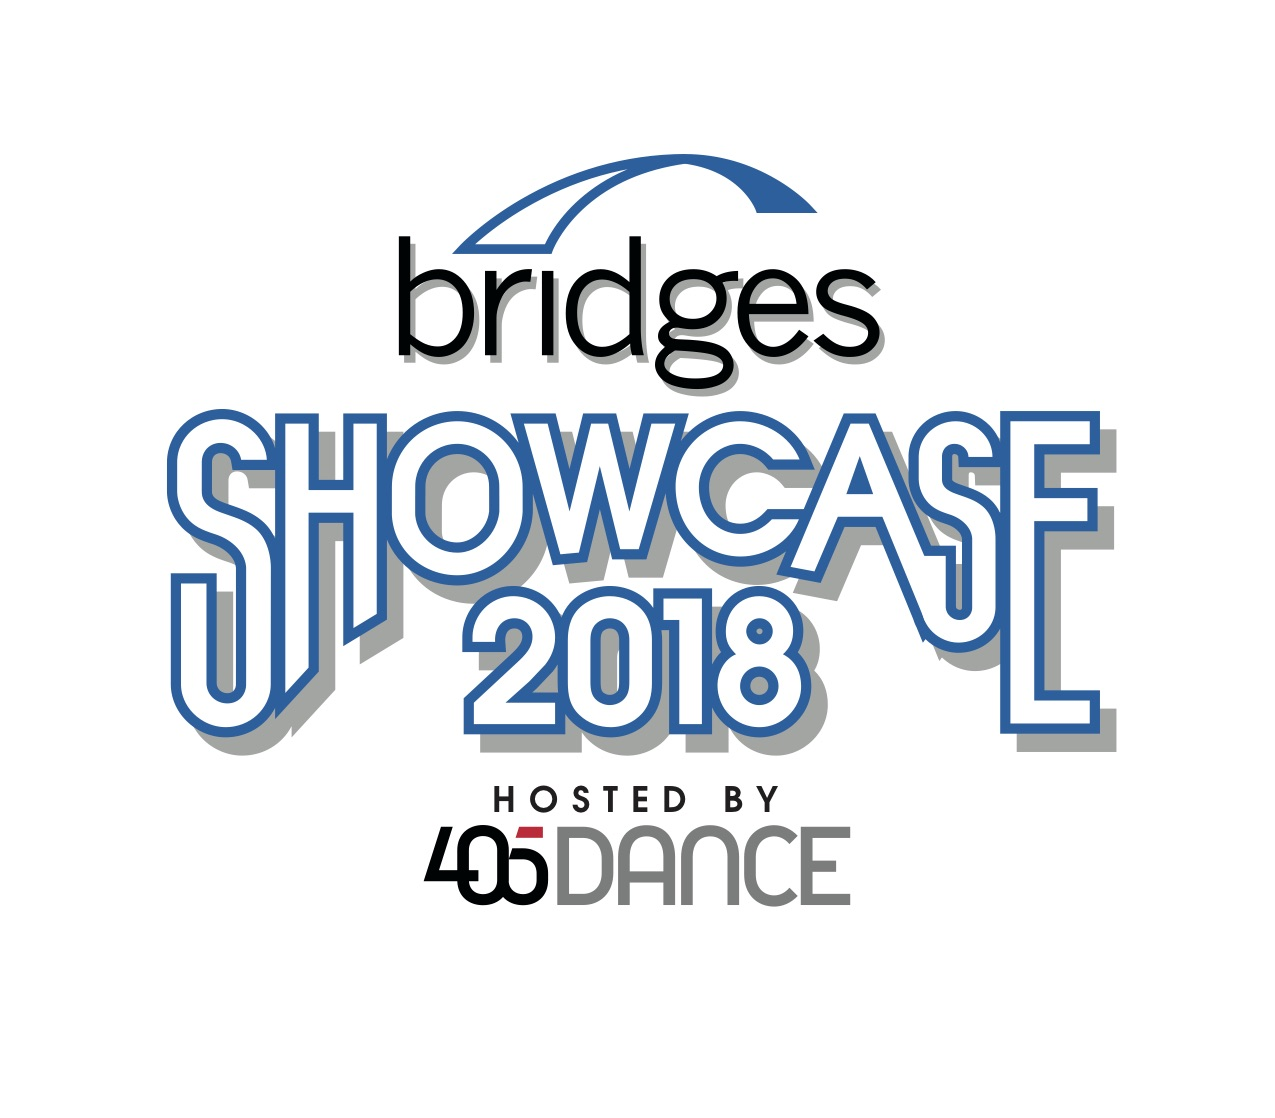 Bridges Showcase 2018 Hosted by 405Dance - June 22, 2018